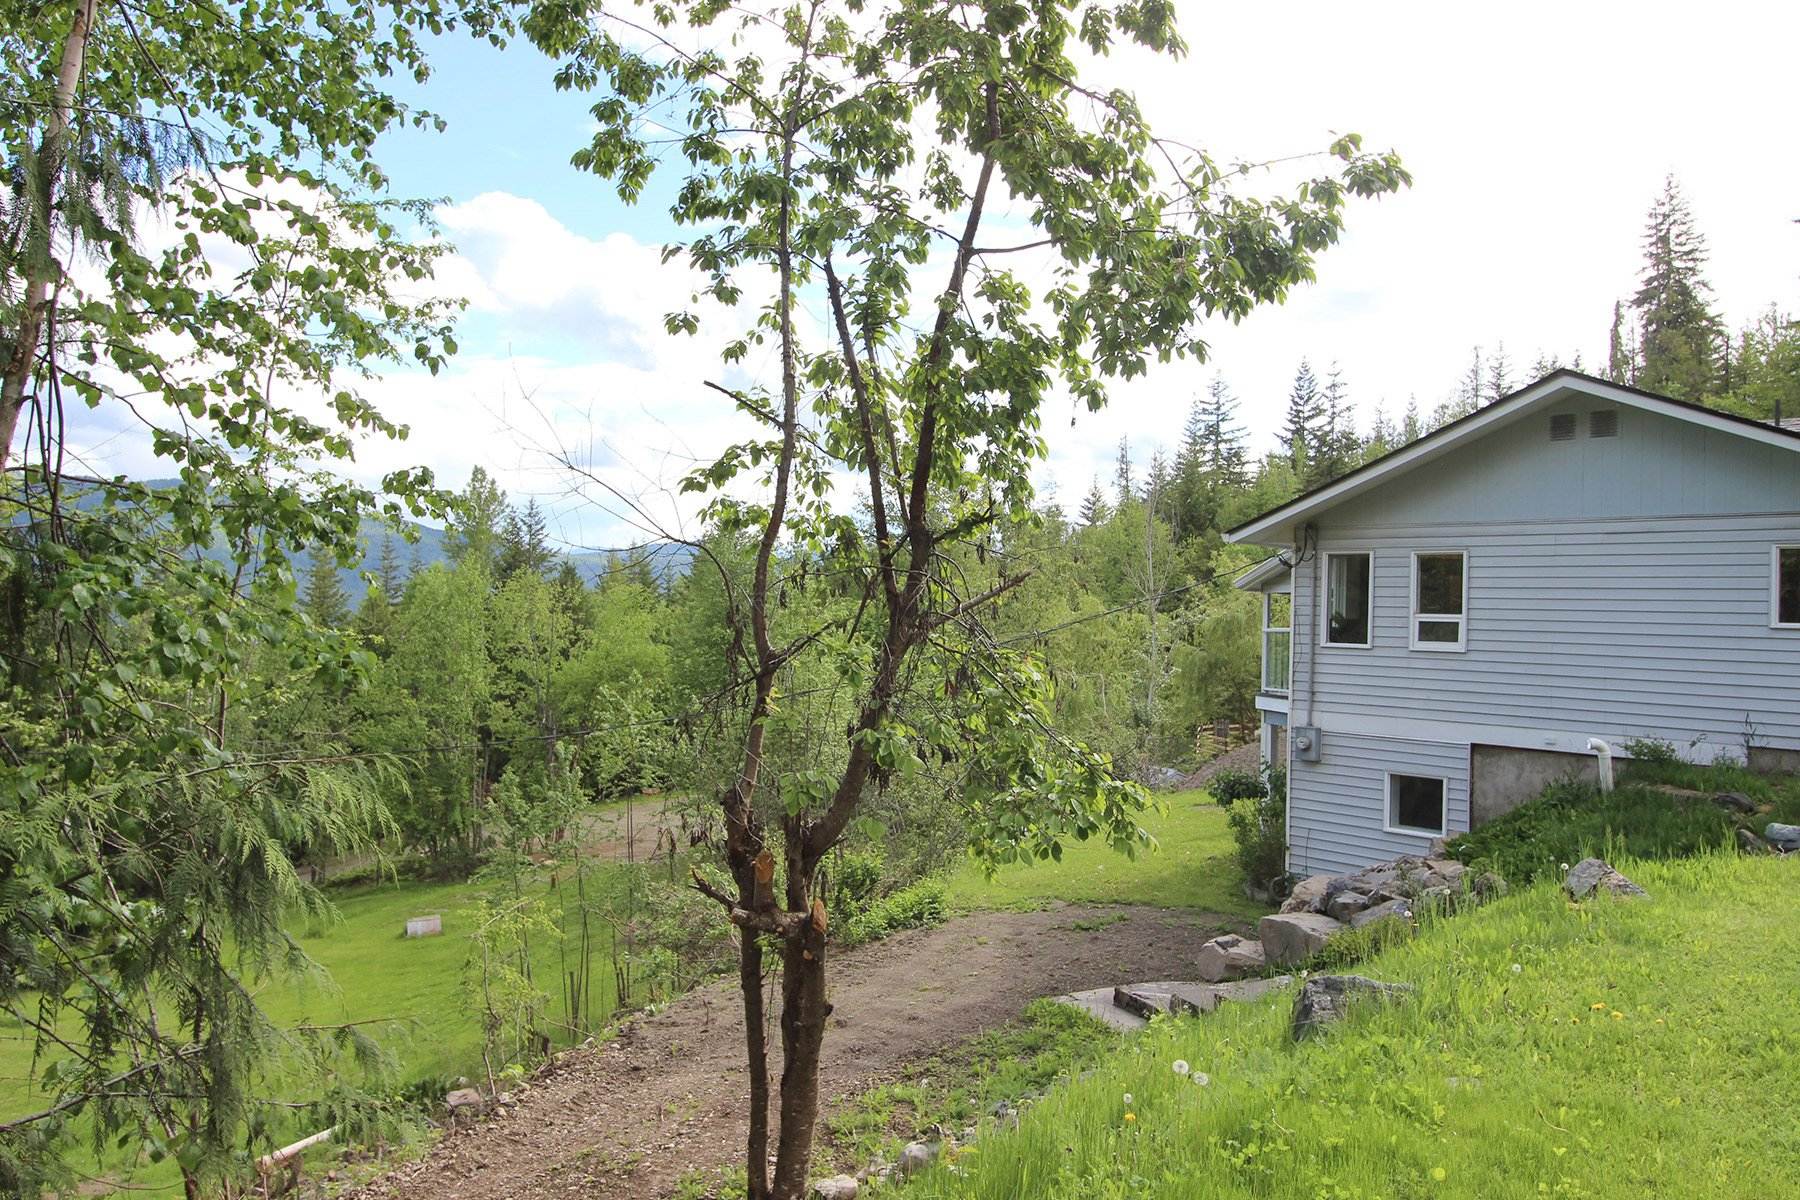 Photo 5: Photos: 6831 Magna Bay Drive in Magna Bay: House with Acreage for sale : MLS®# 10205520